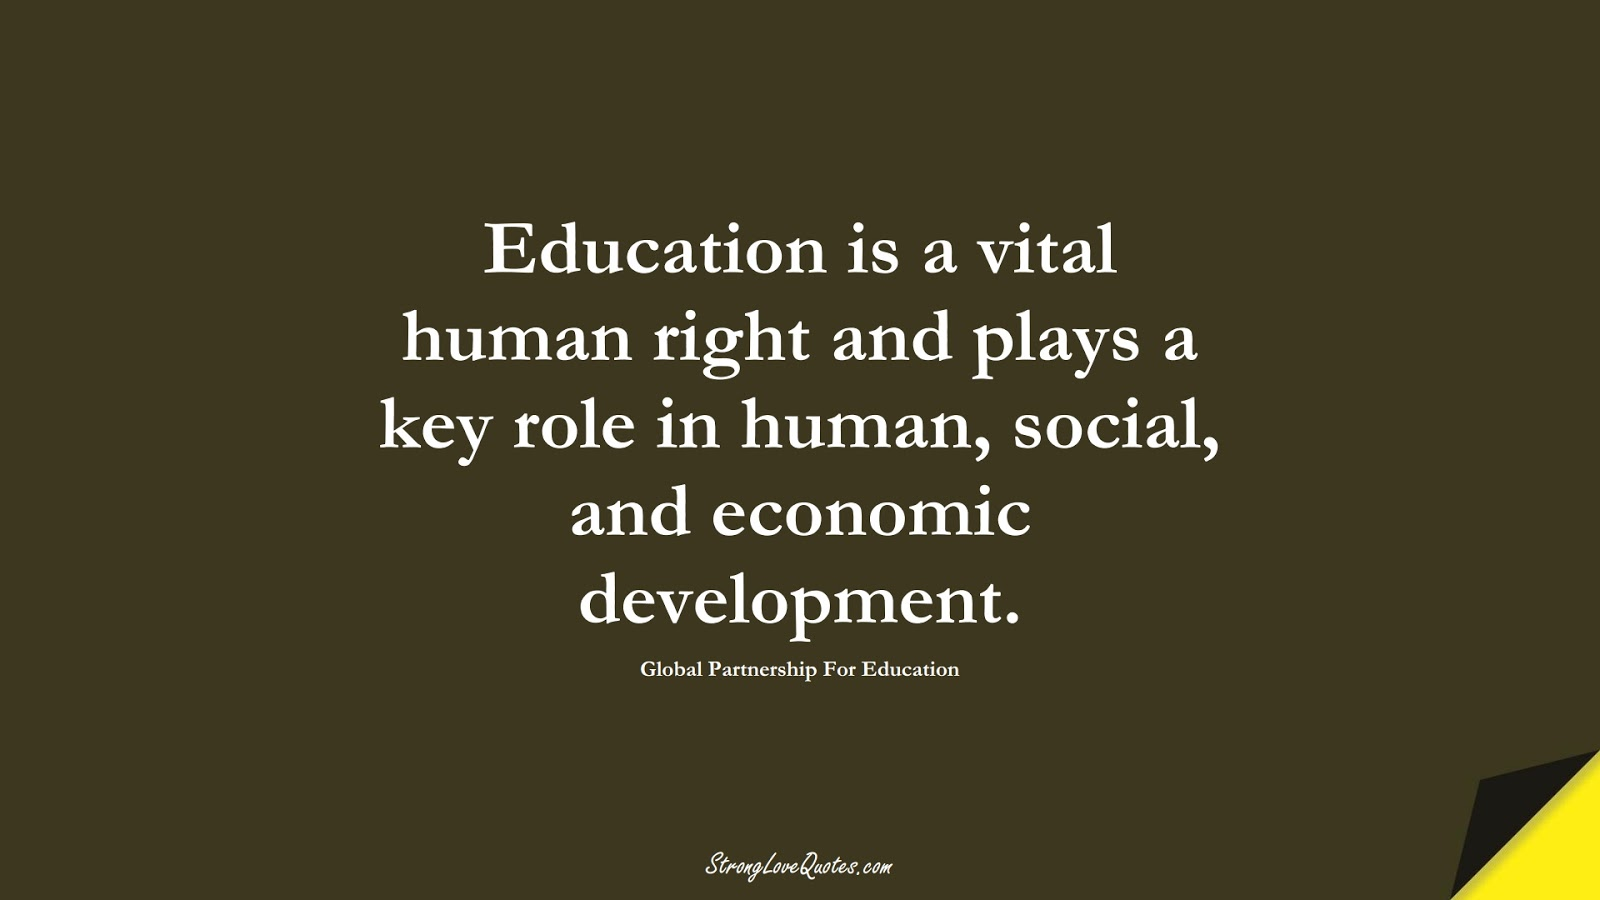 Education is a vital human right and plays a key role in human, social, and economic development. (Global Partnership For Education);  #EducationQuotes